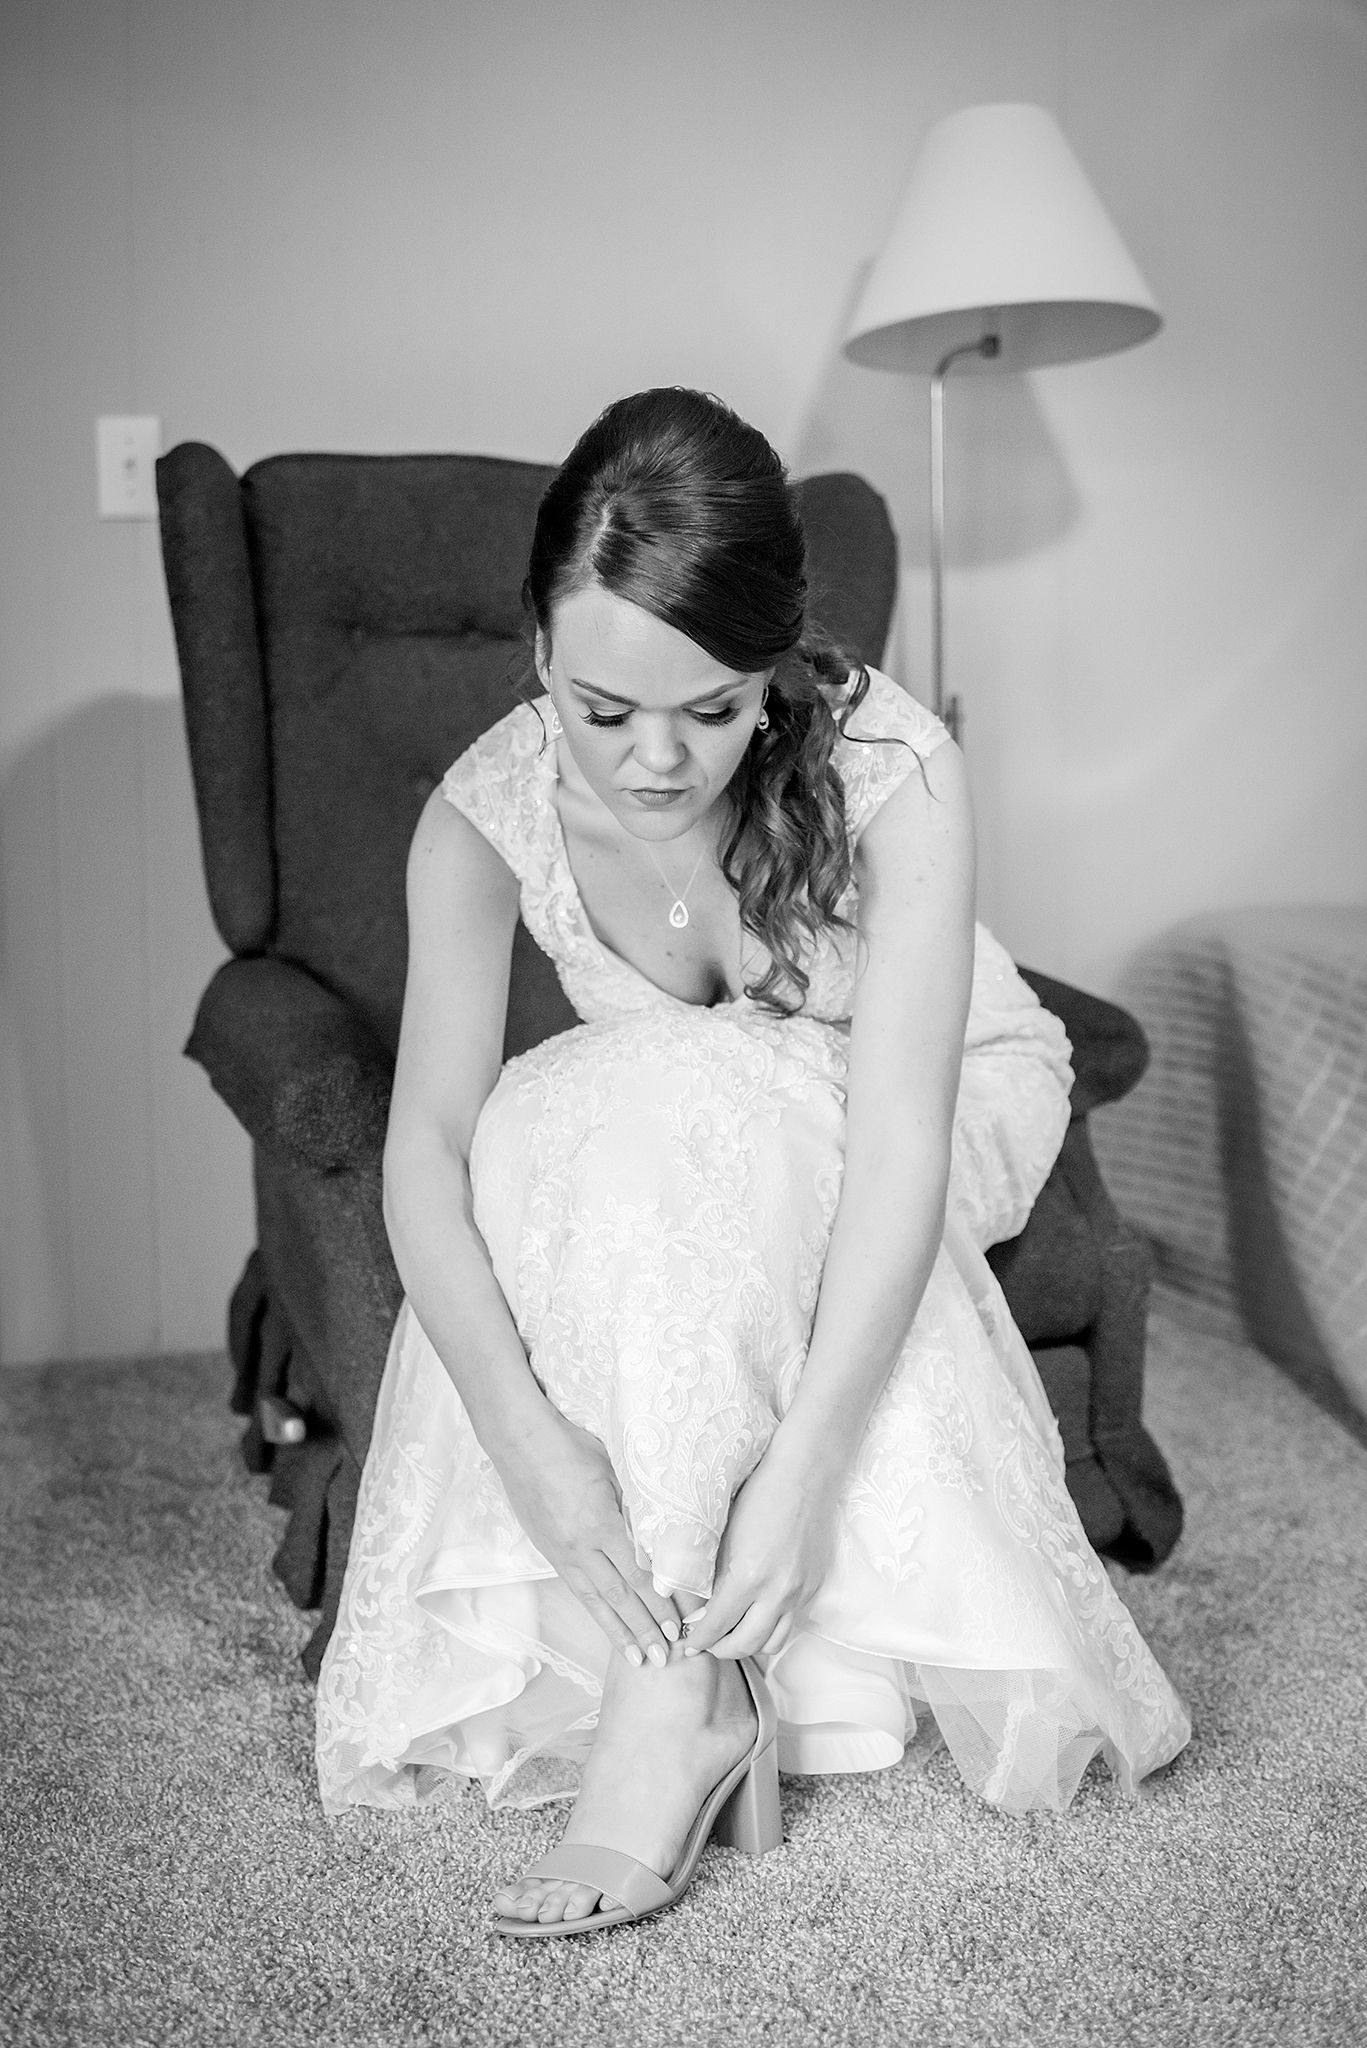 Lindsay-Adkins-Photography-Michigan-Wedding-Photographer-Sauk-Valley-Brooklyn-Michigan7